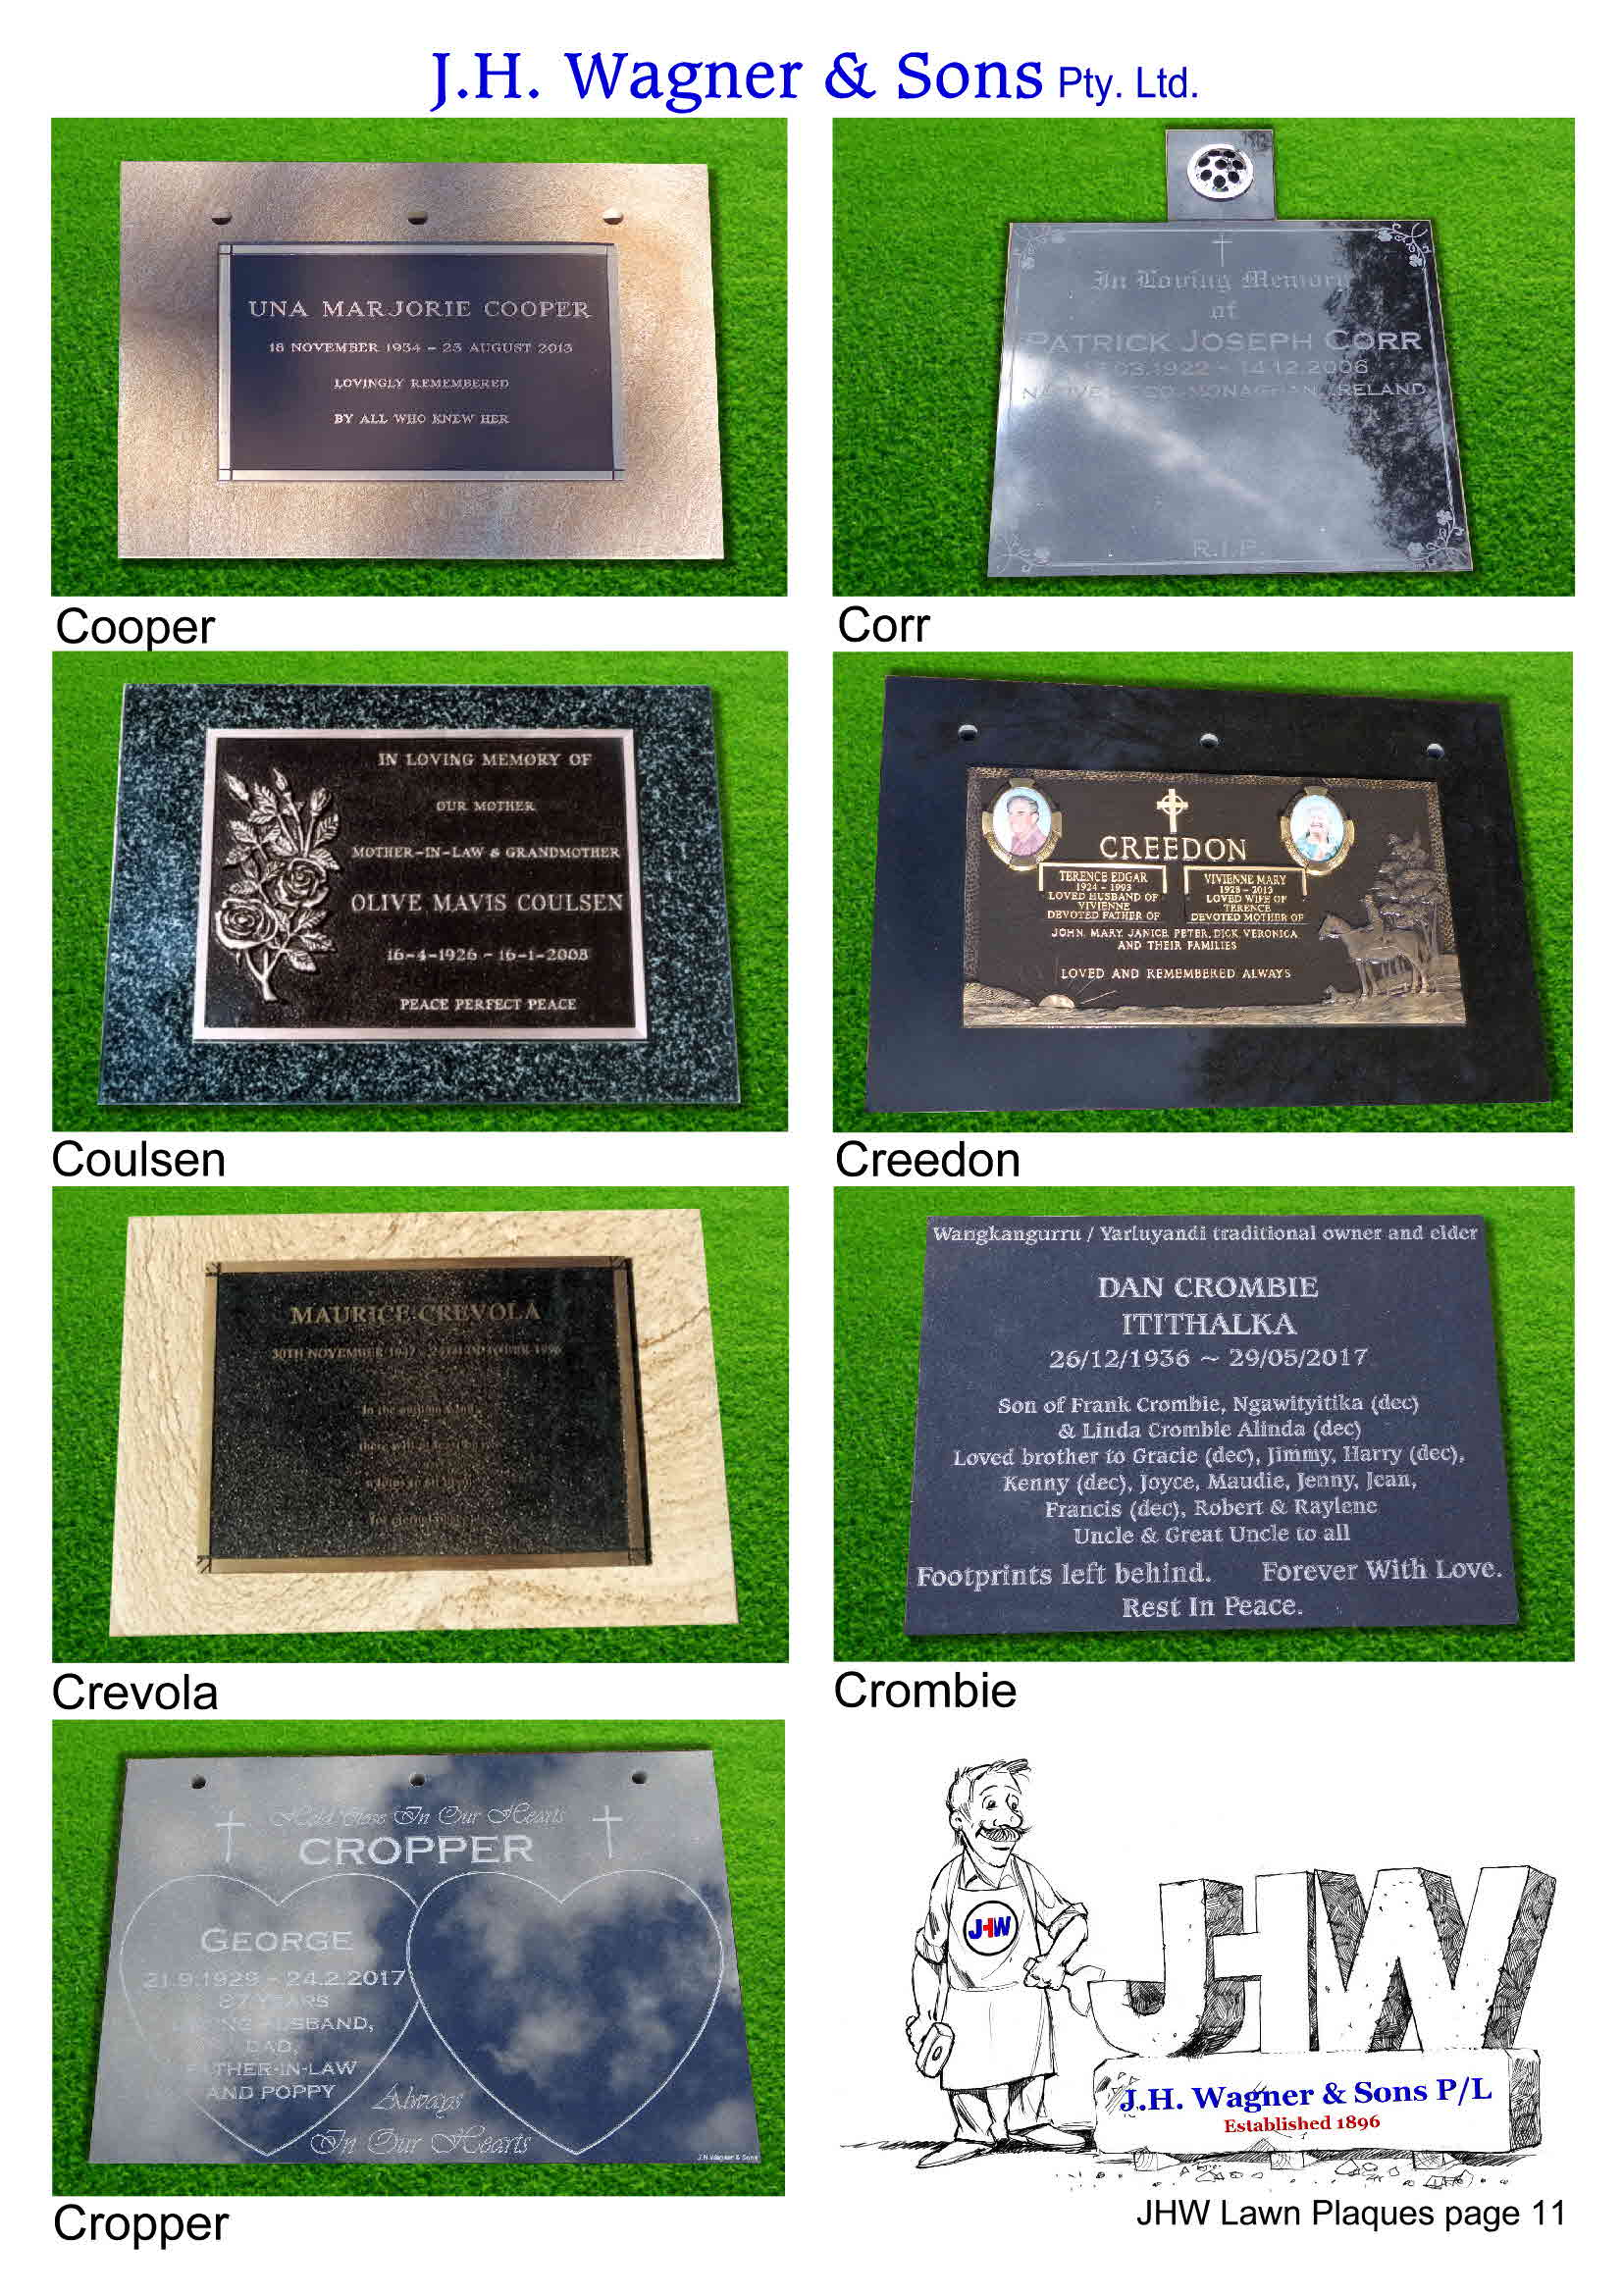 Cemetery Lawn Plaques by J.H. Wagner & Sons